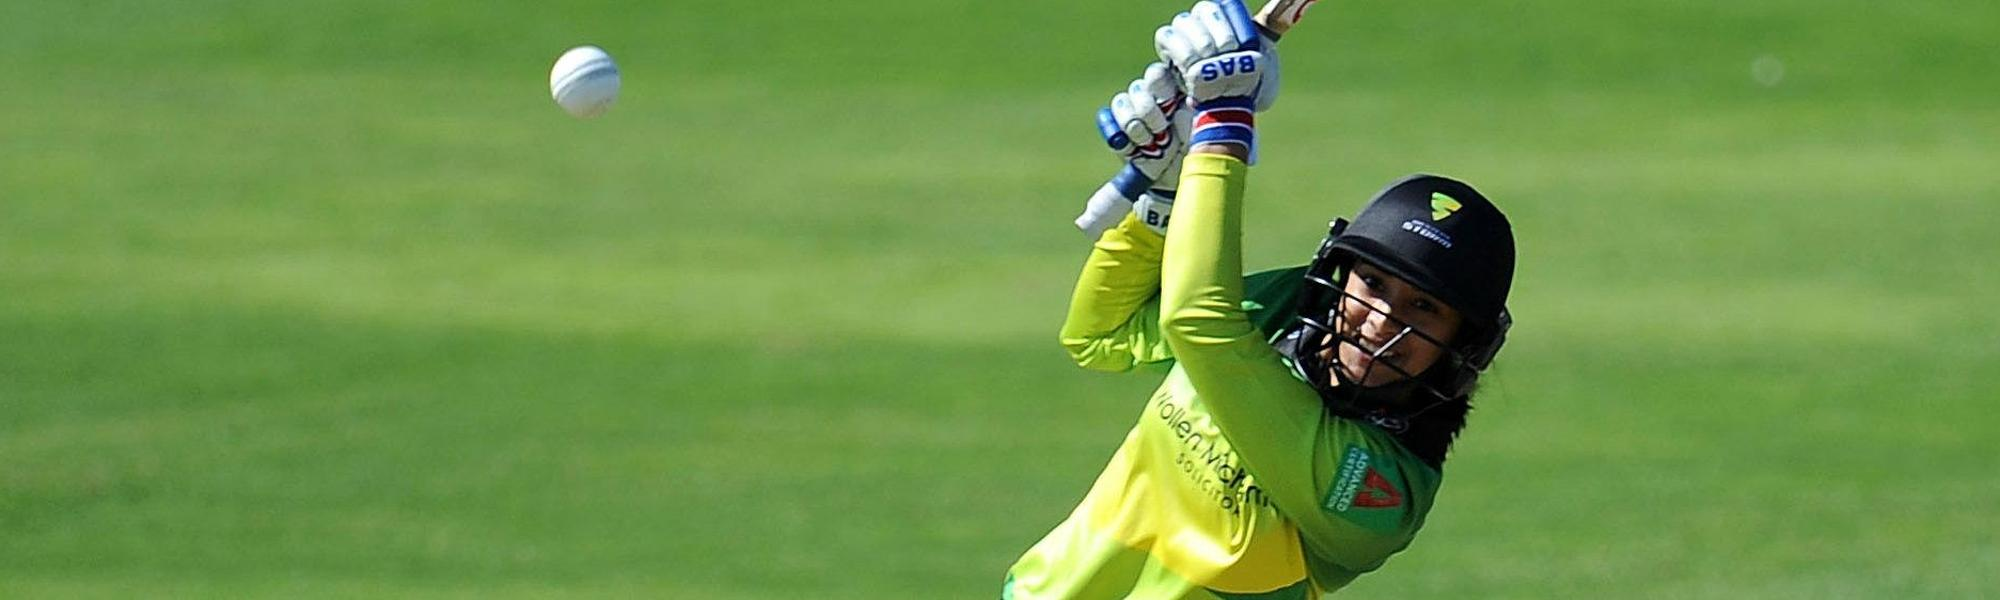 Smriti Mandhana has totalled 338 runs in six innings in WSL 2018